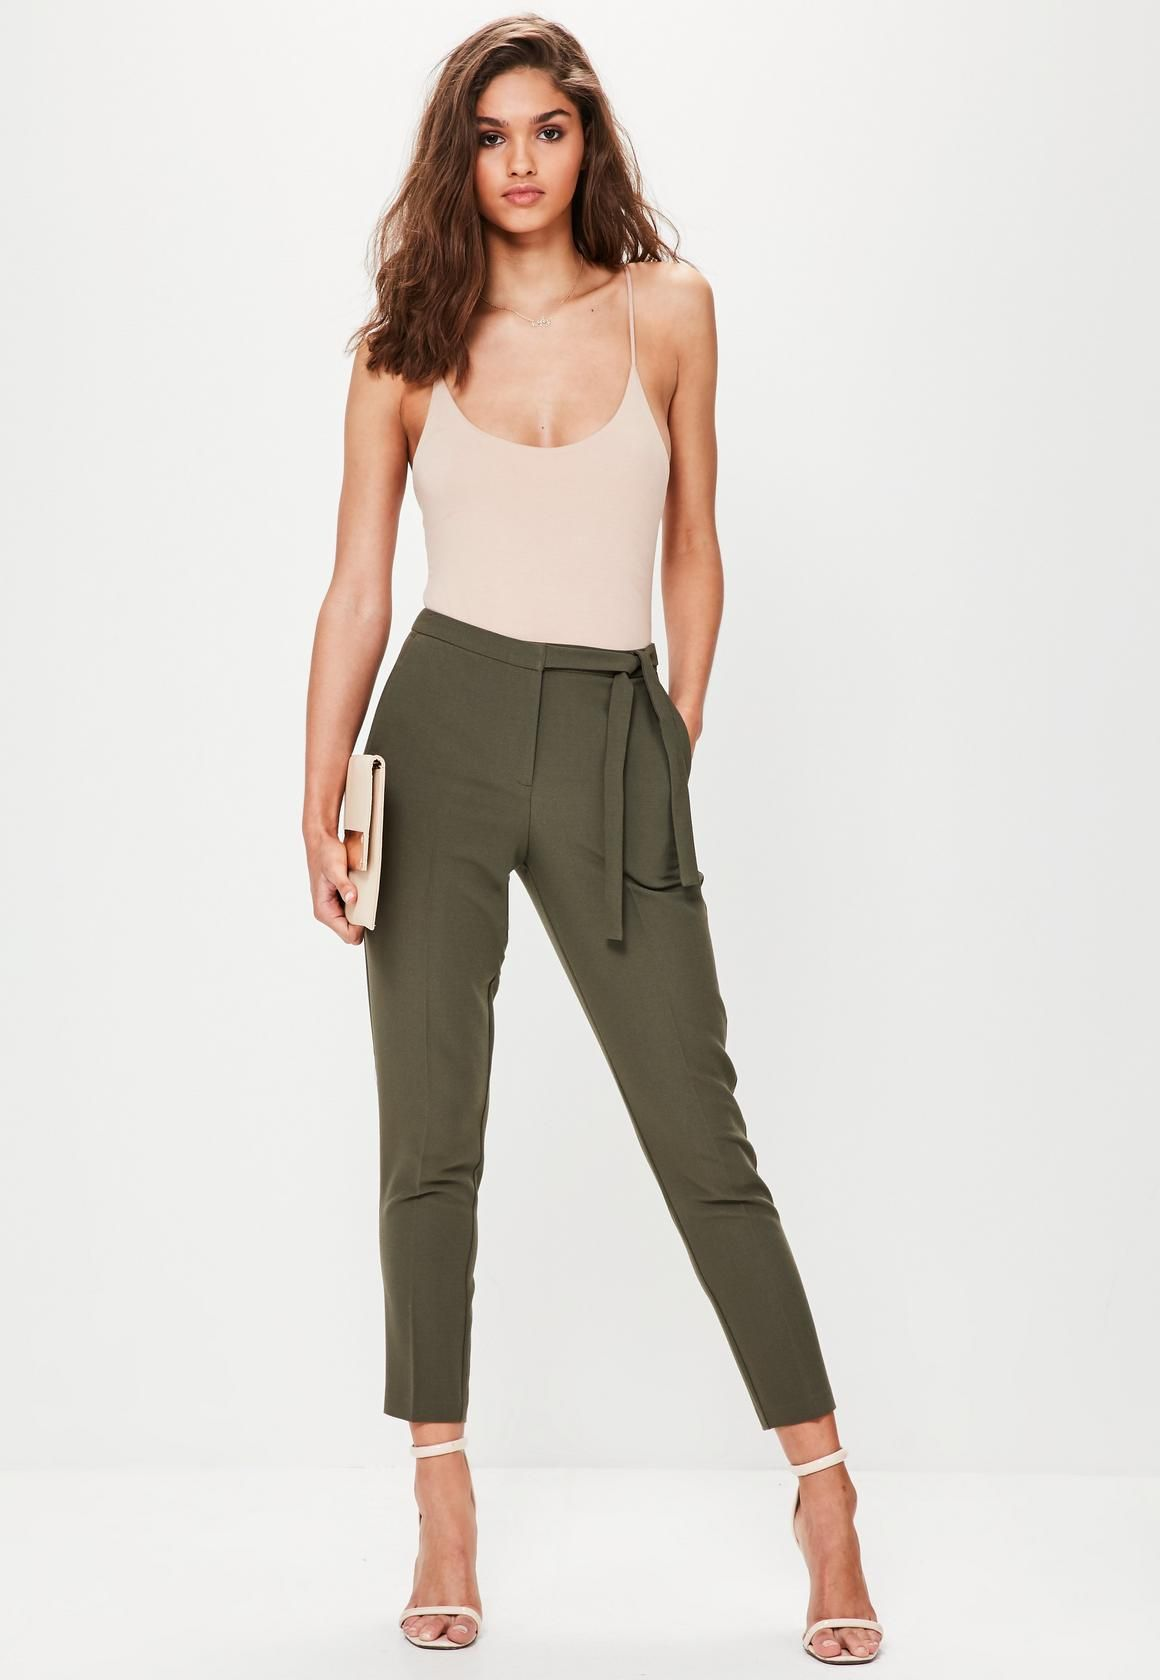 c13cfd4757b9d Missguided - Khaki Tie Belt Crepe High Waisted Trousers